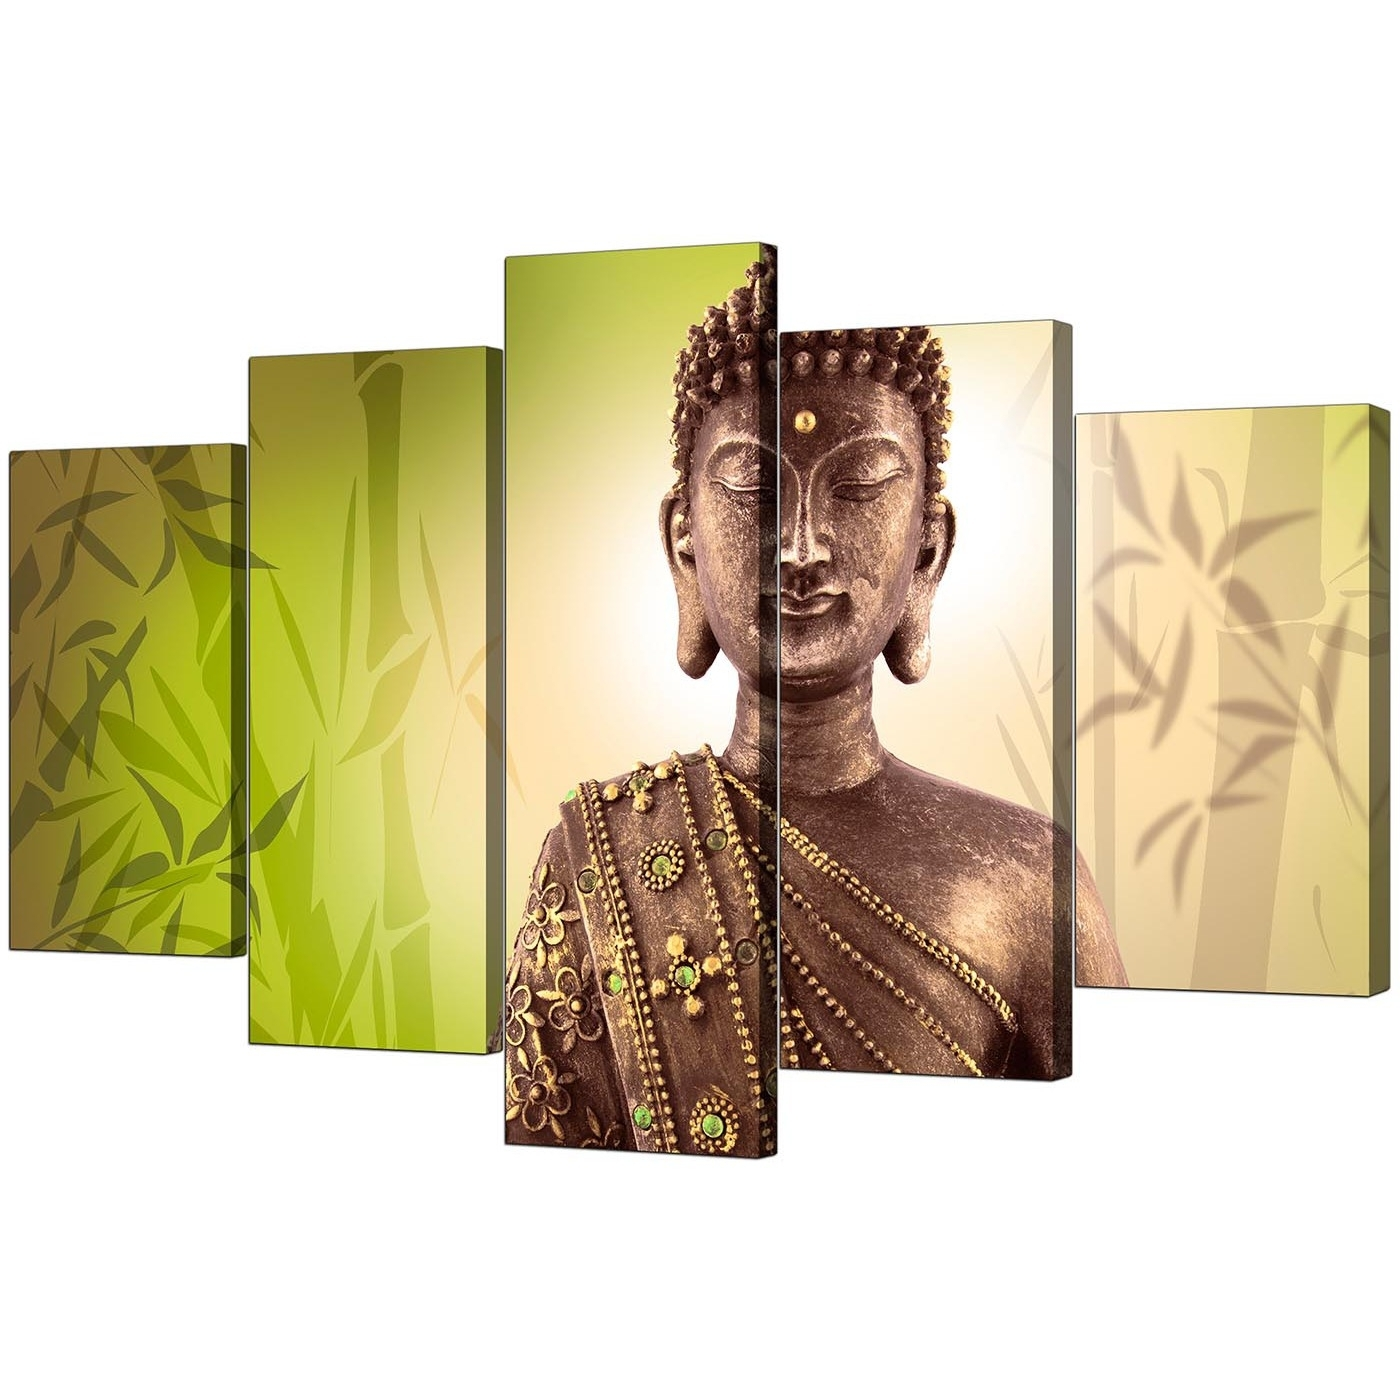 Preferred Large Green Wall Art In Extra Large Buddha Canvas Wall Art 5 Piece In Green (View 14 of 15)